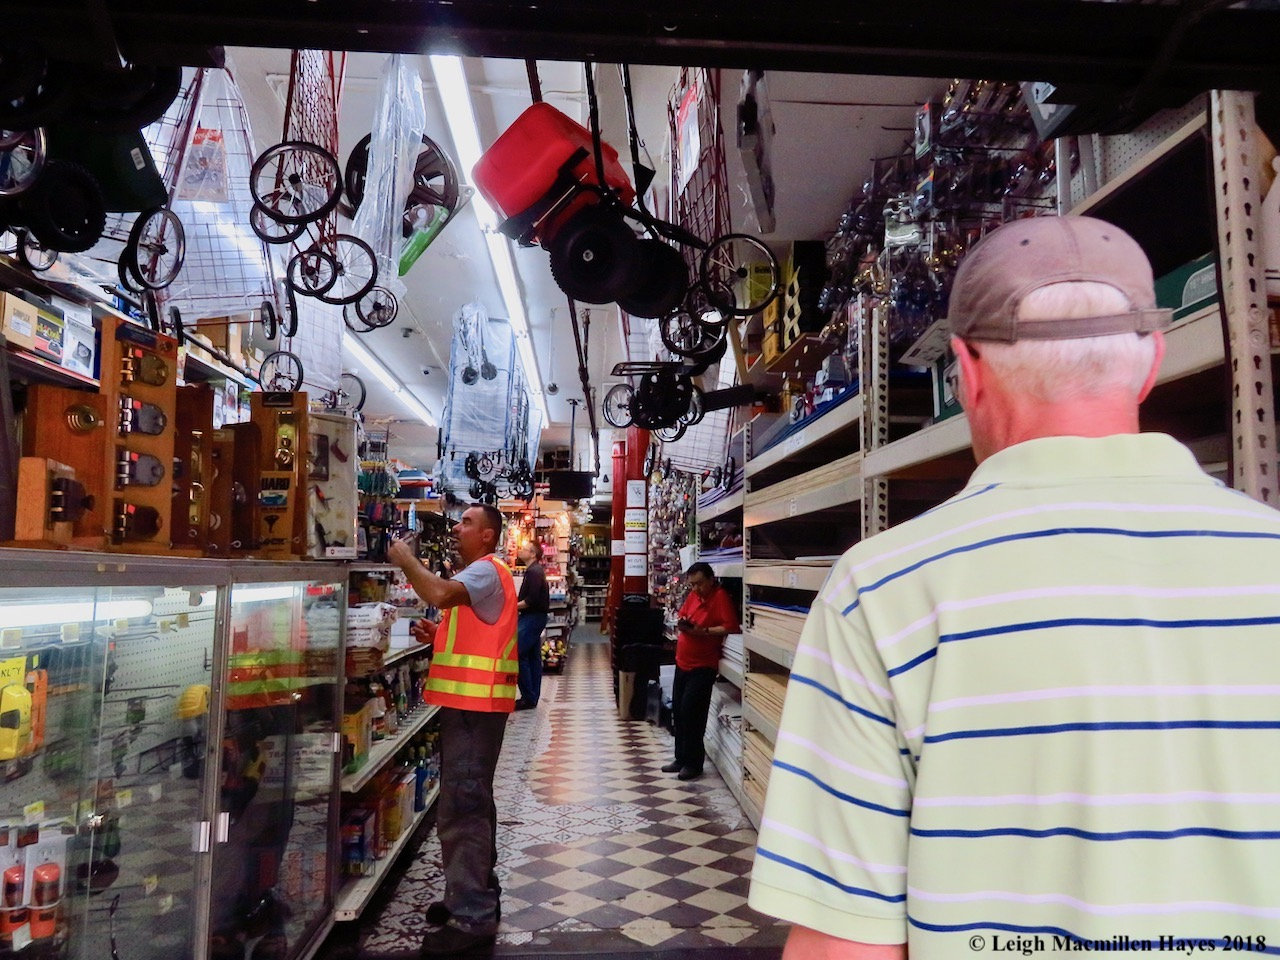 43a-entering the hardware store